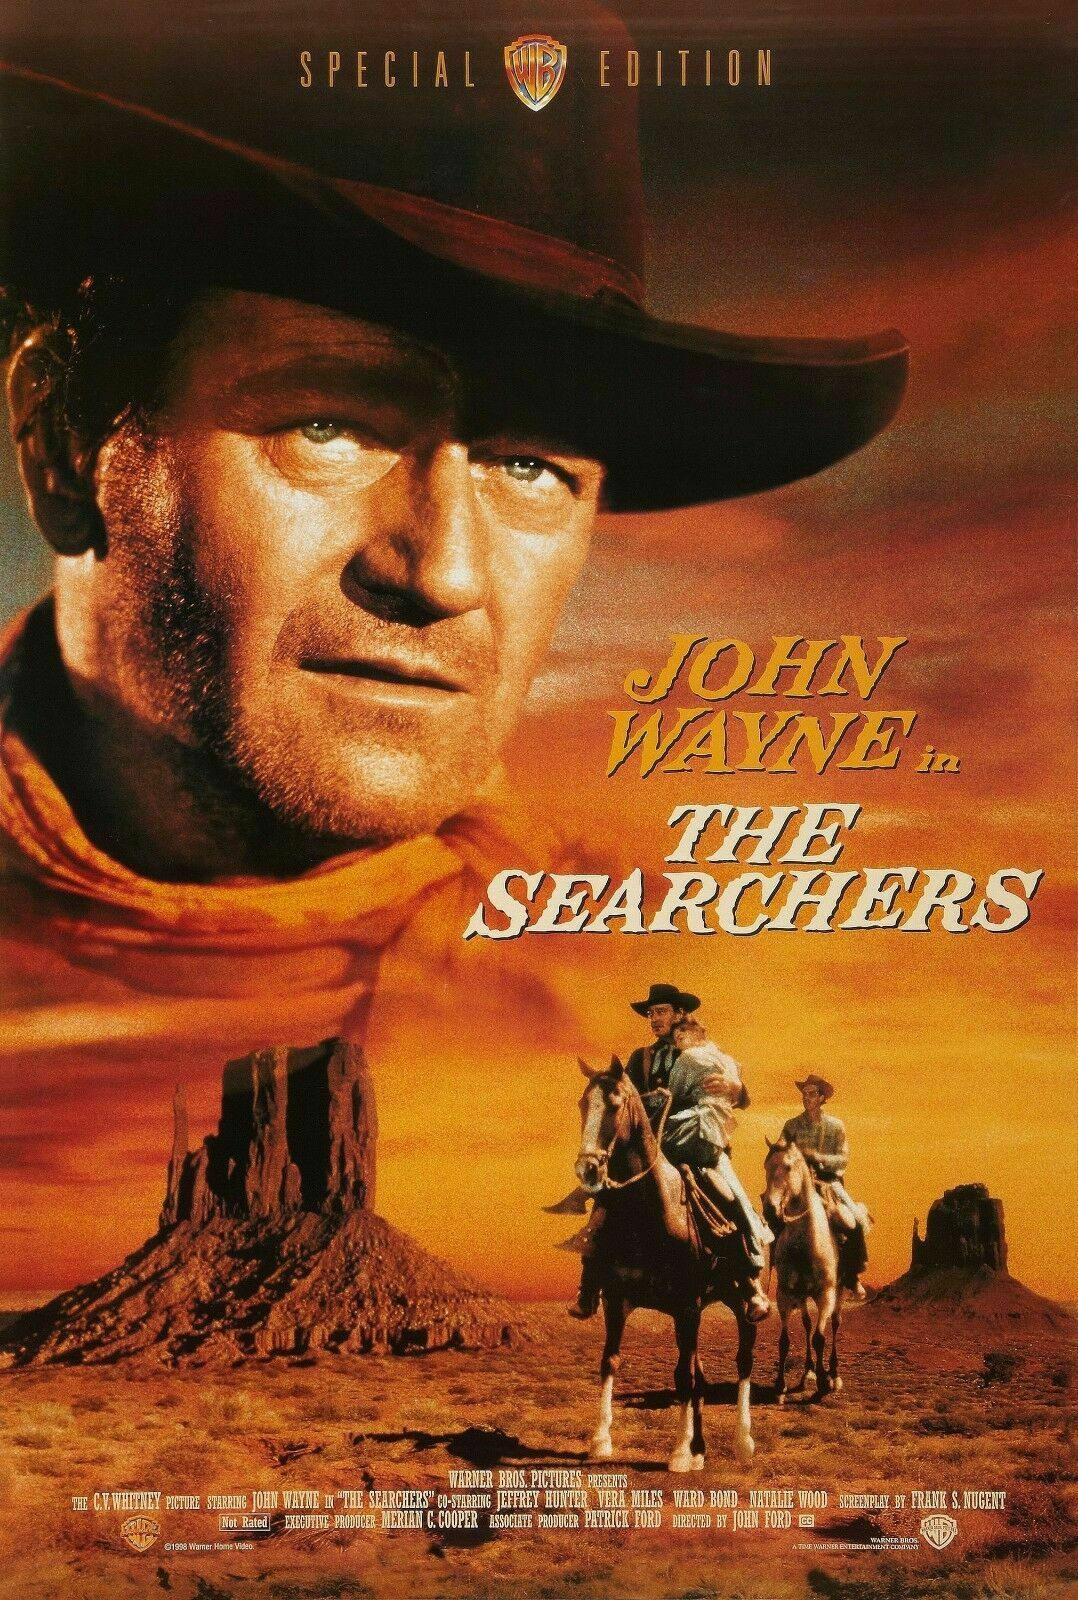 THE SEARCHERS Movie John Wayne Western Art Film Print Silk Poster Home Wall Decor 24x36inch image